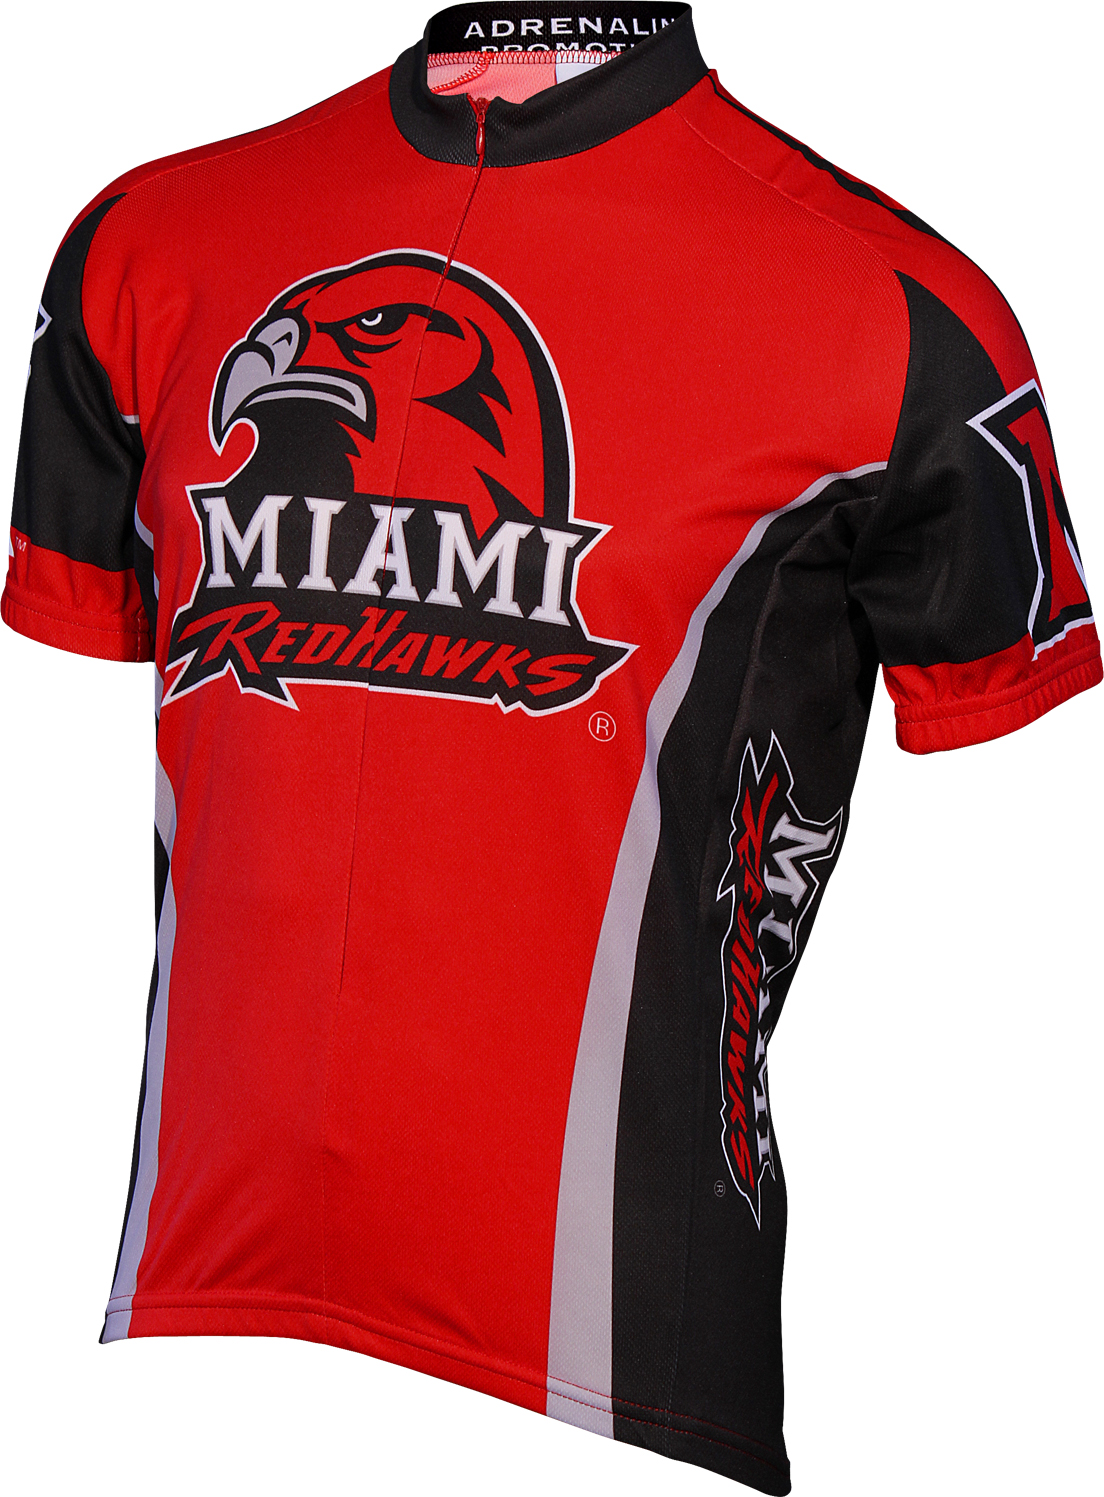 Miami University of Ohio Redhawks Cycling Jersey